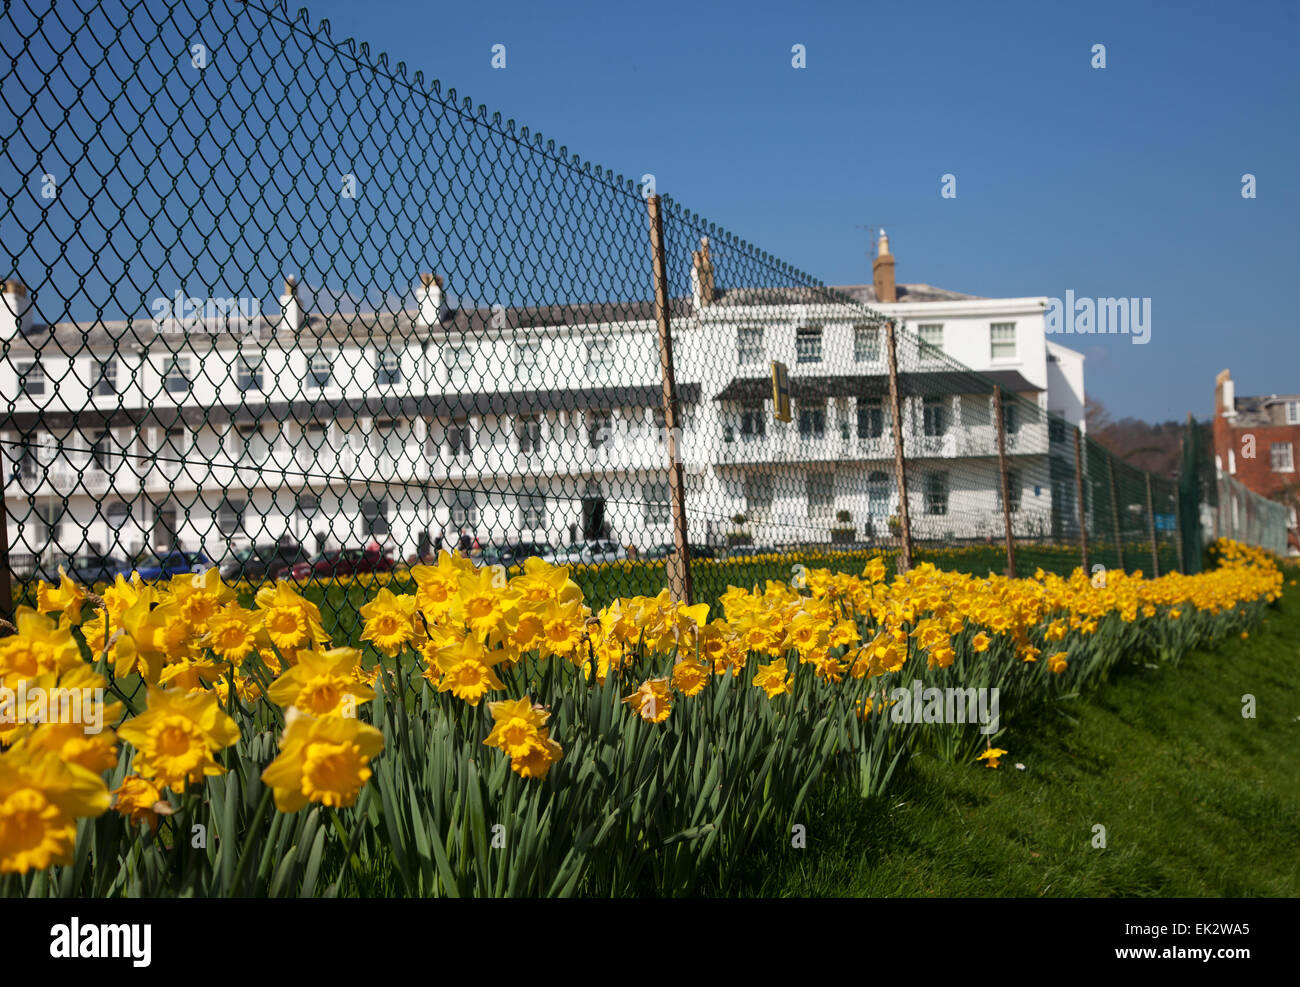 Sidmouth, UK. 06th Apr, 2015. A project to plant one million bulbs – the dying wish of a Canadian millionaire, is - Stock Image